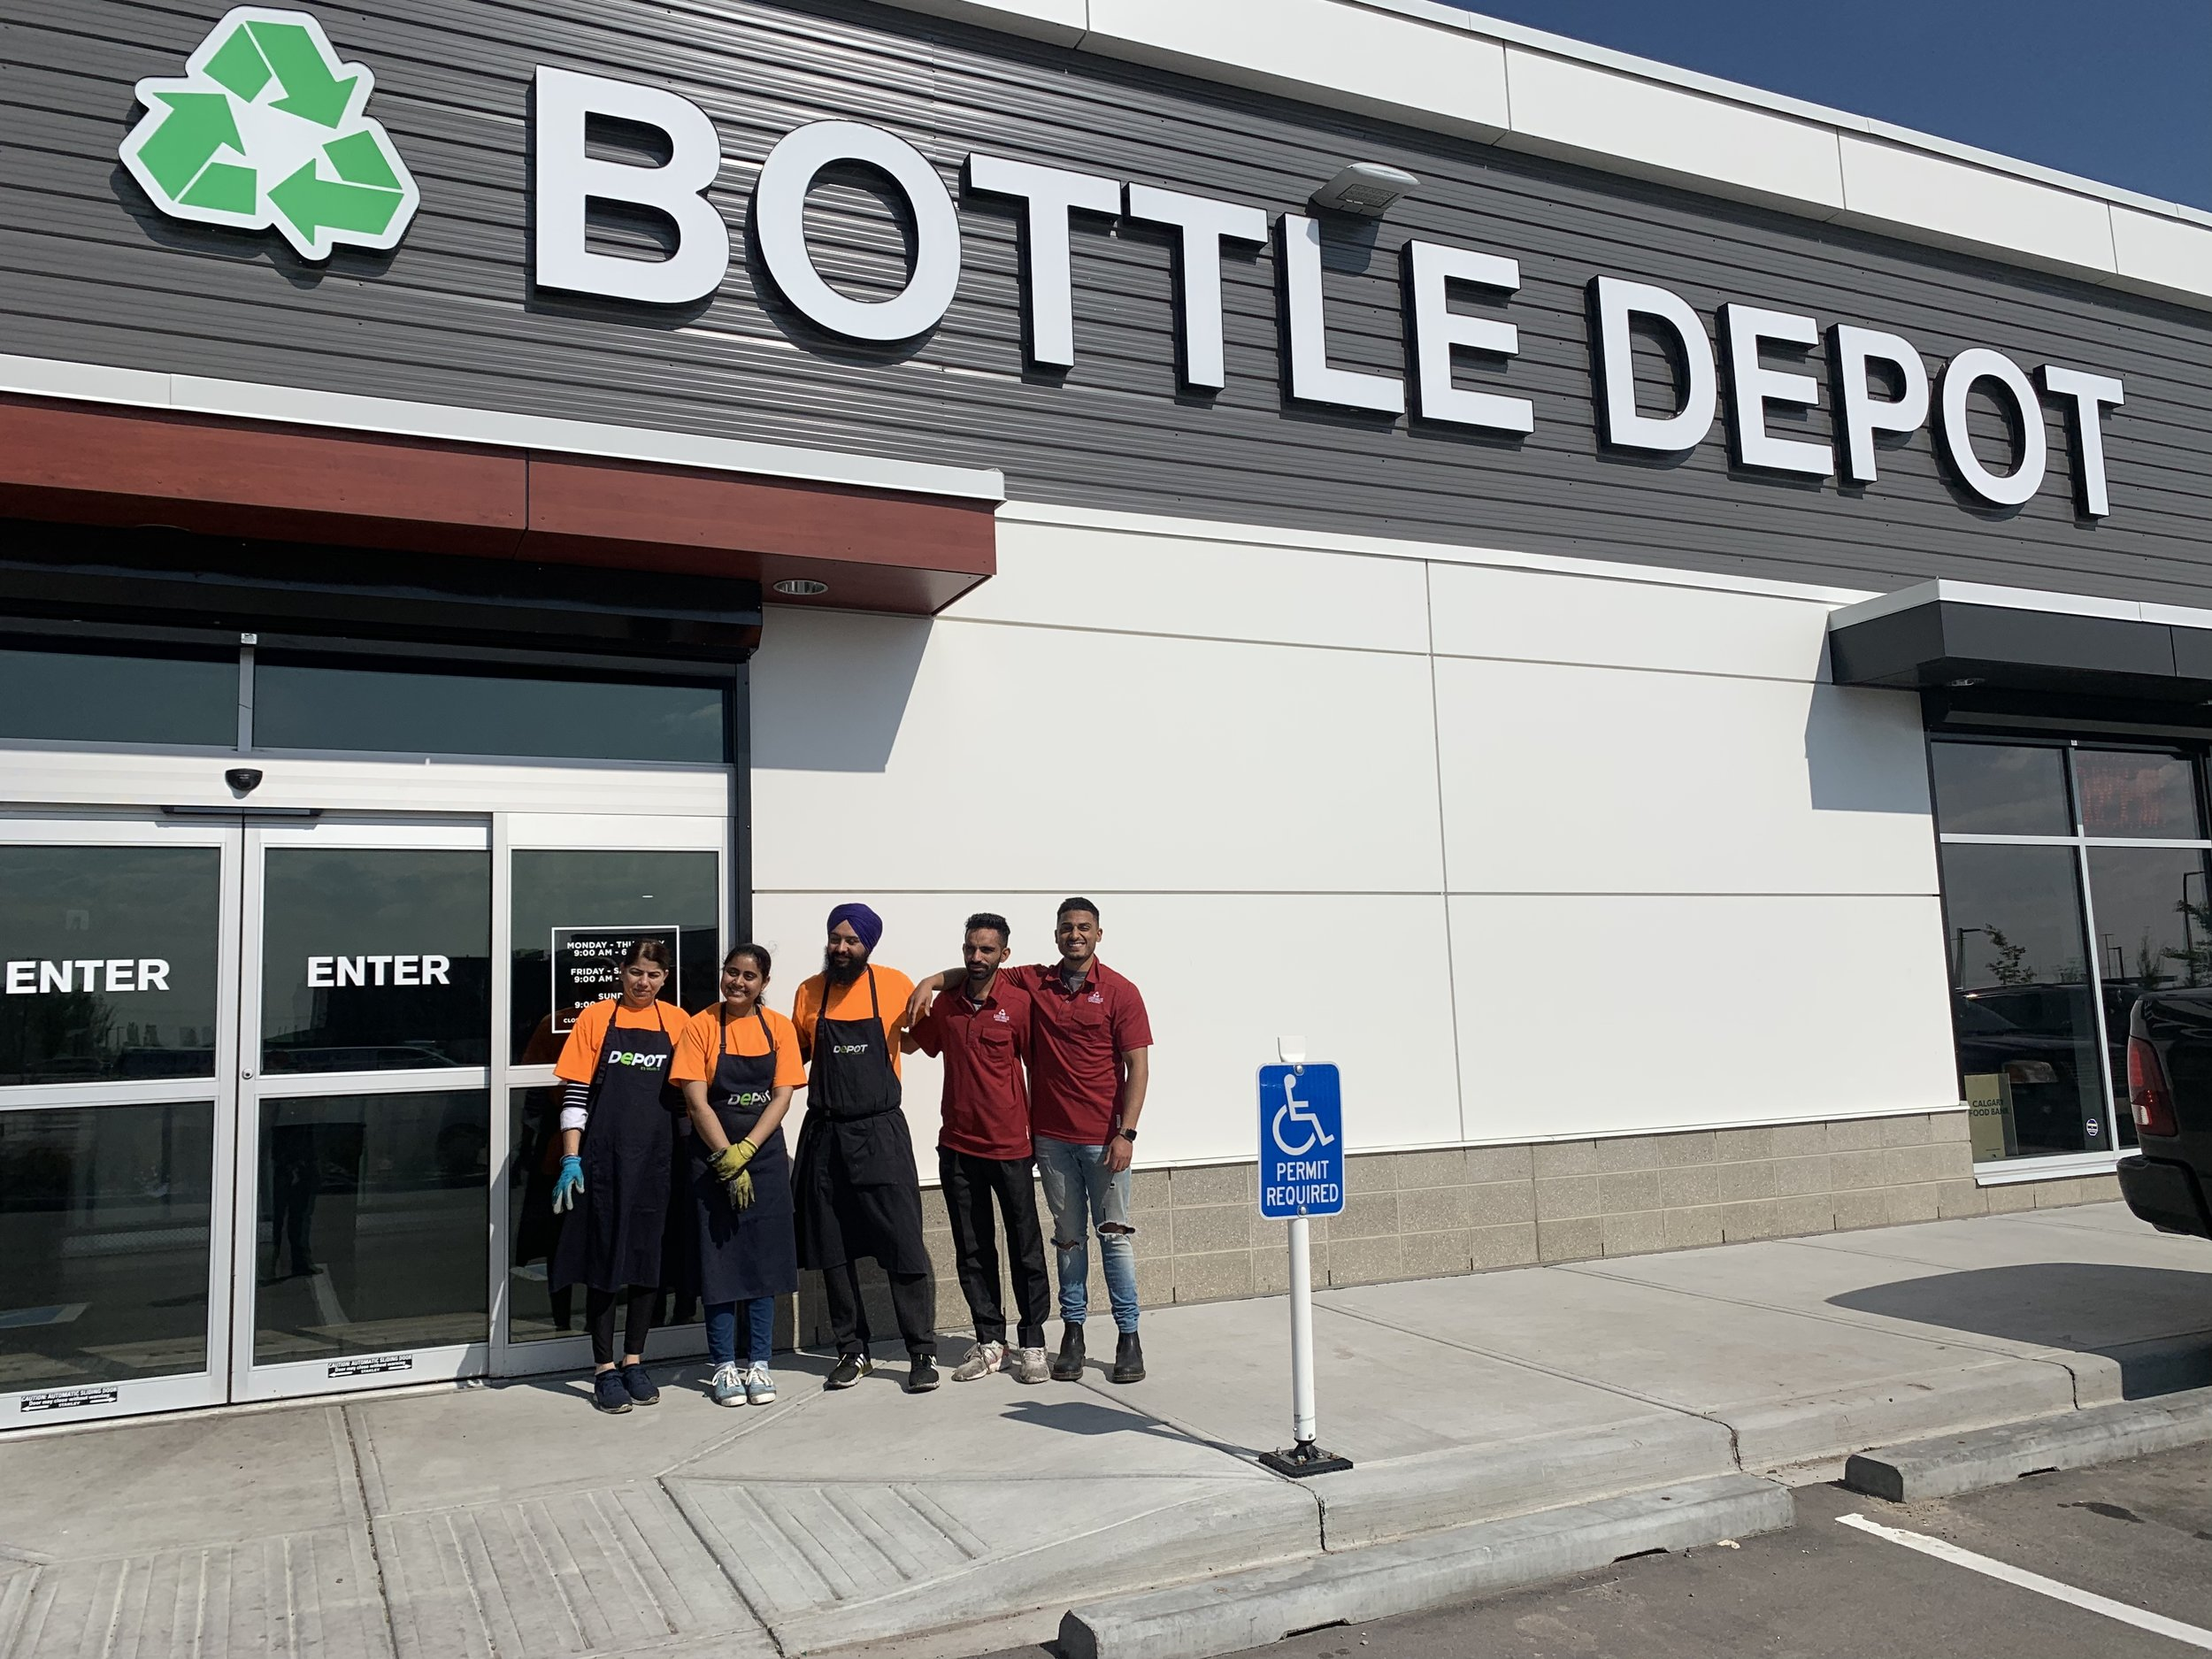 East Hills Bottle Depot (Calgary)